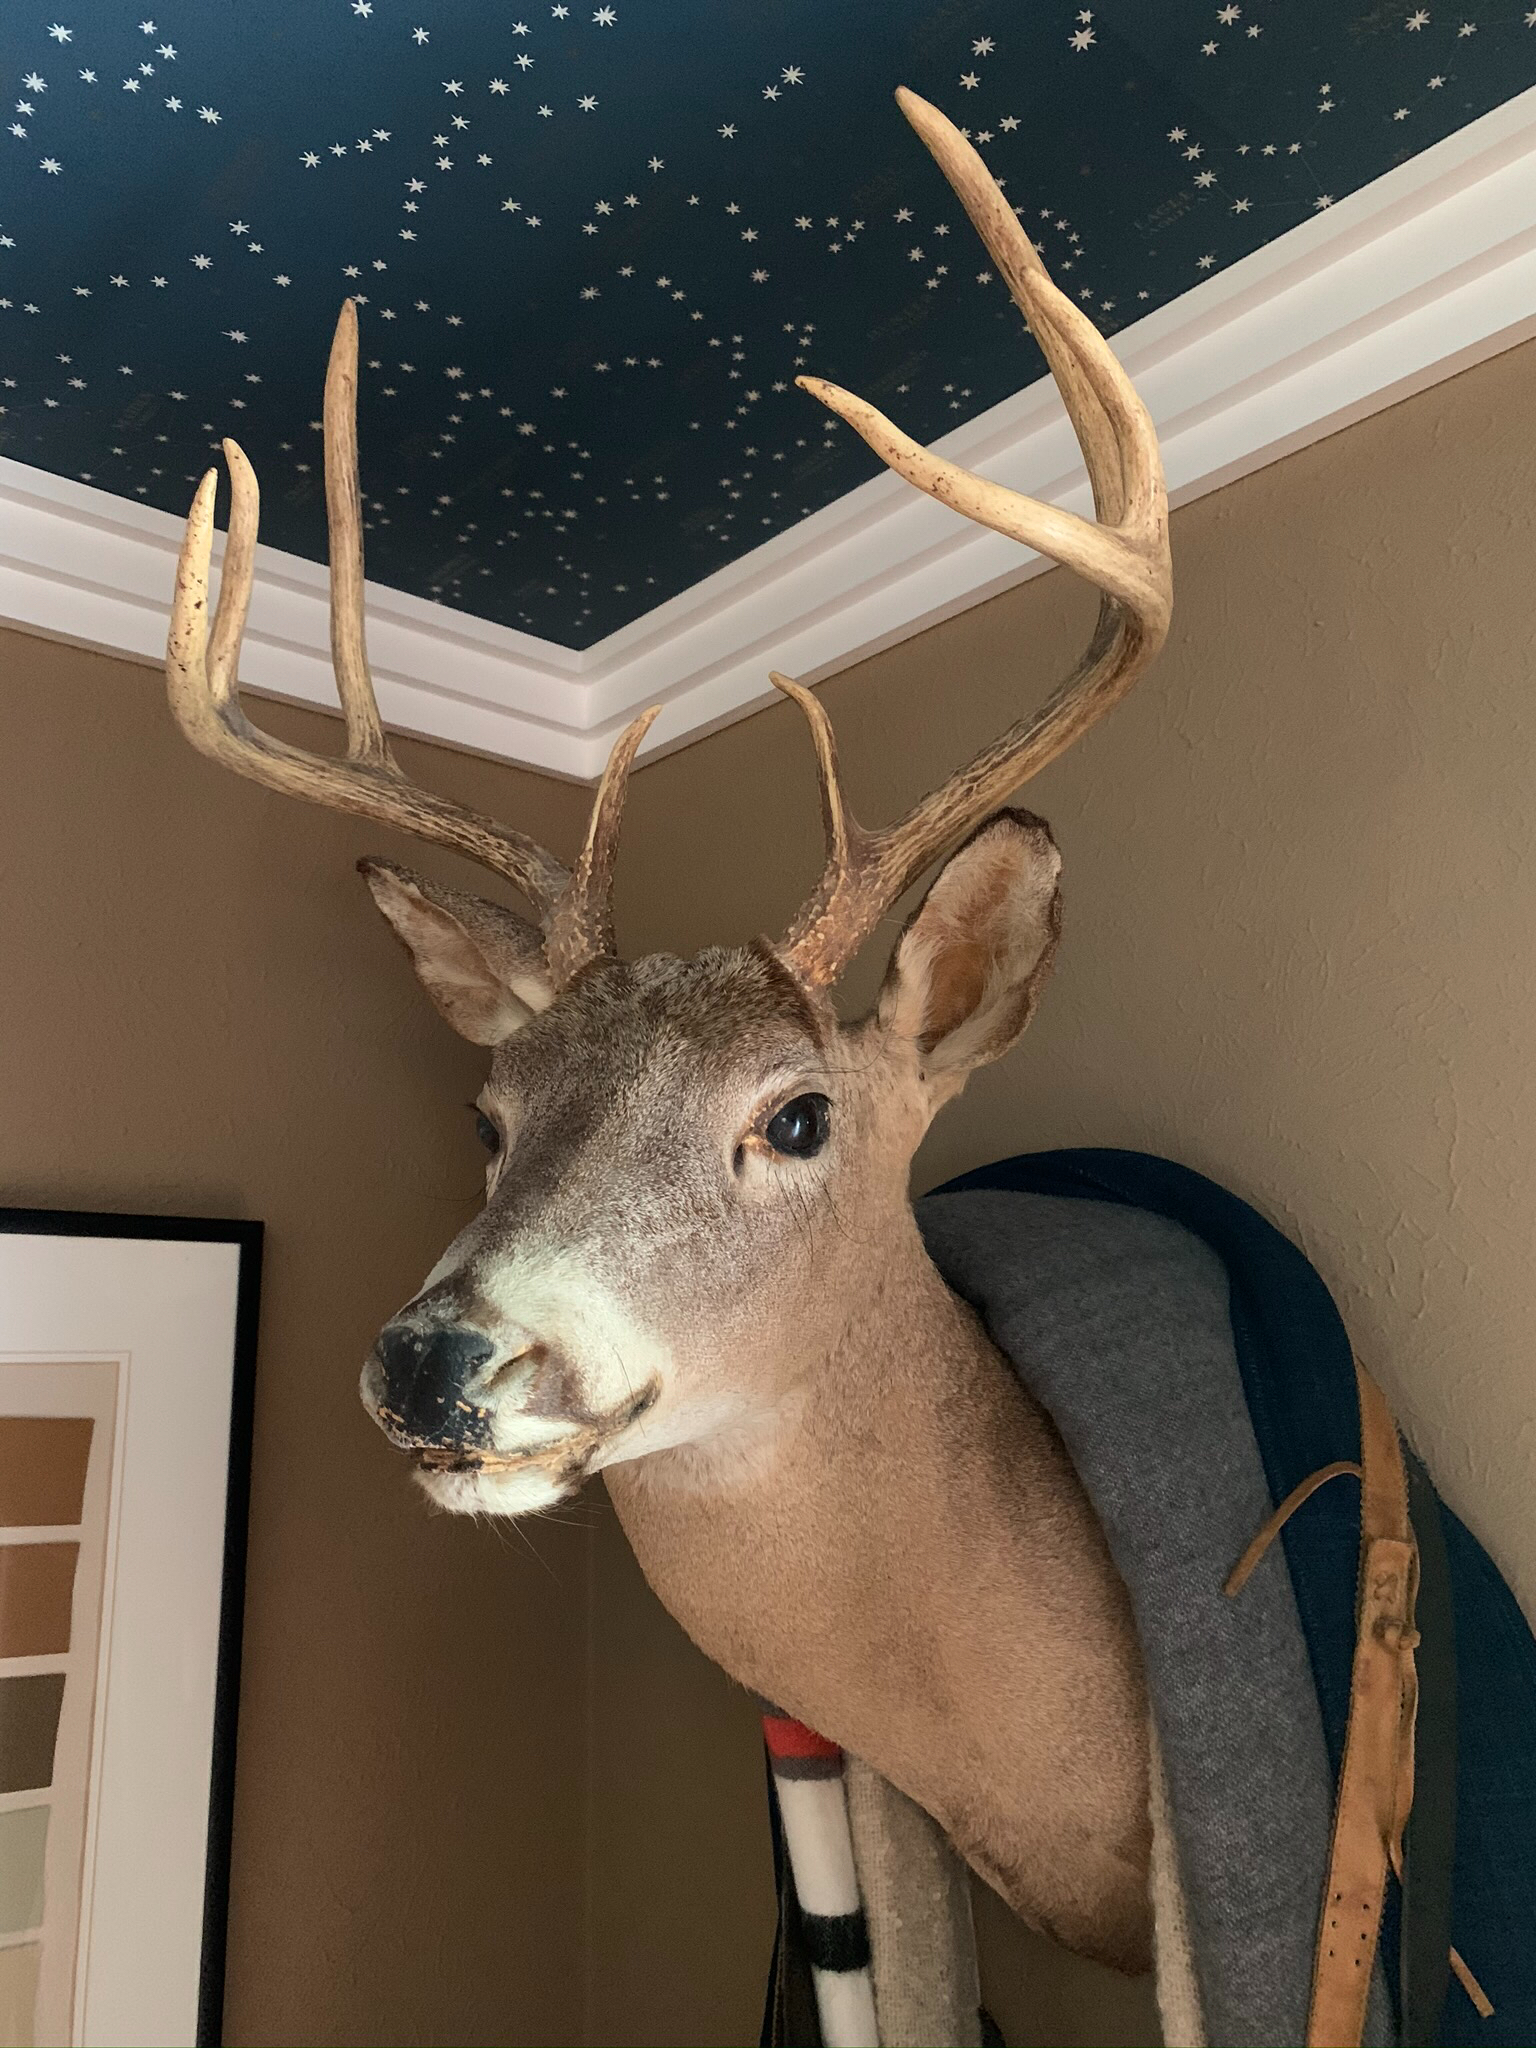 Whitetail deer Mount with Ralph Lauren Northern Hemisphere Wallpaper in Guest Room